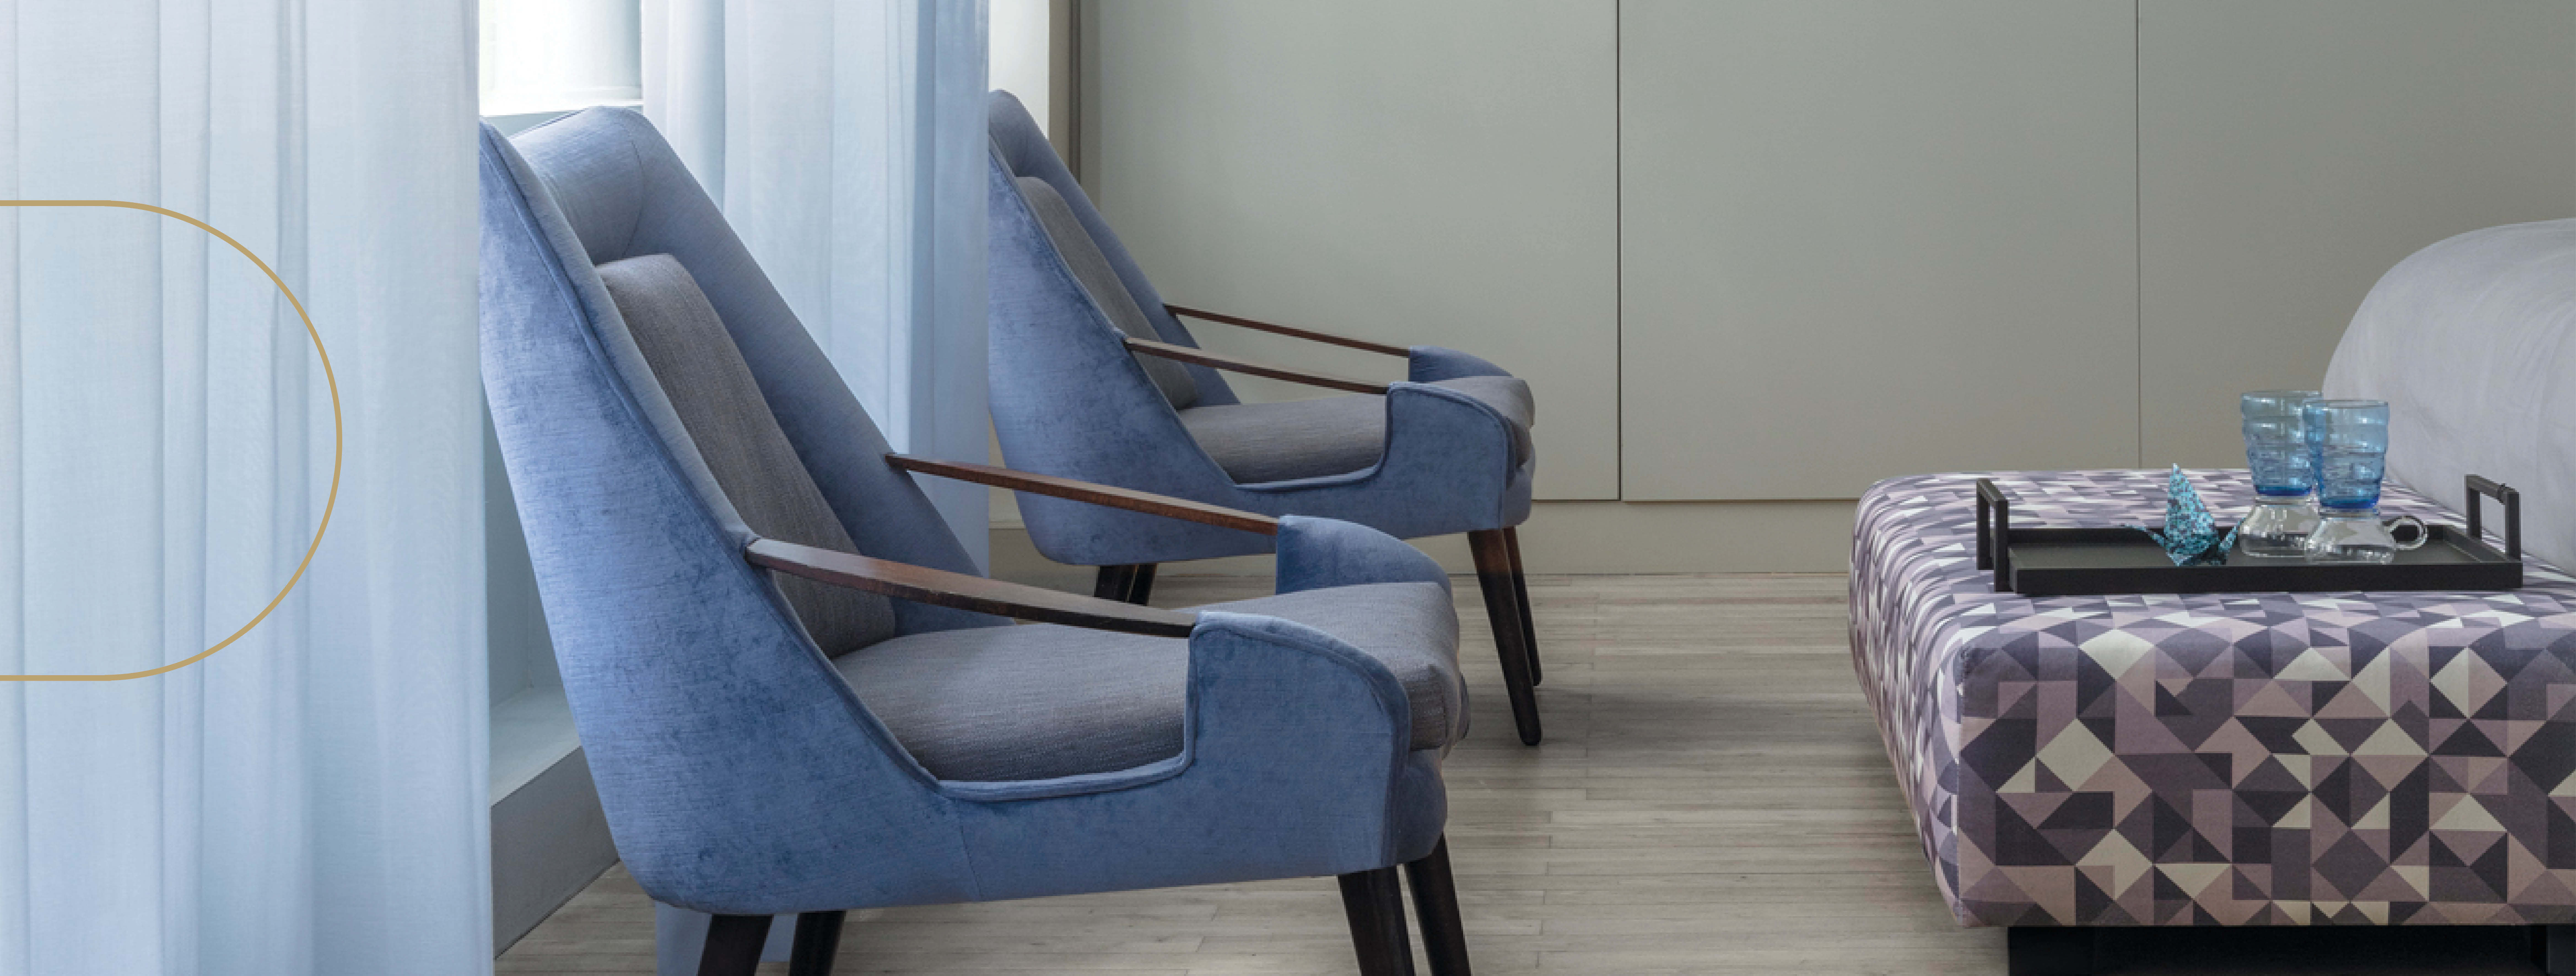 fire retardant upholstery on chairs in a hospital bedroom